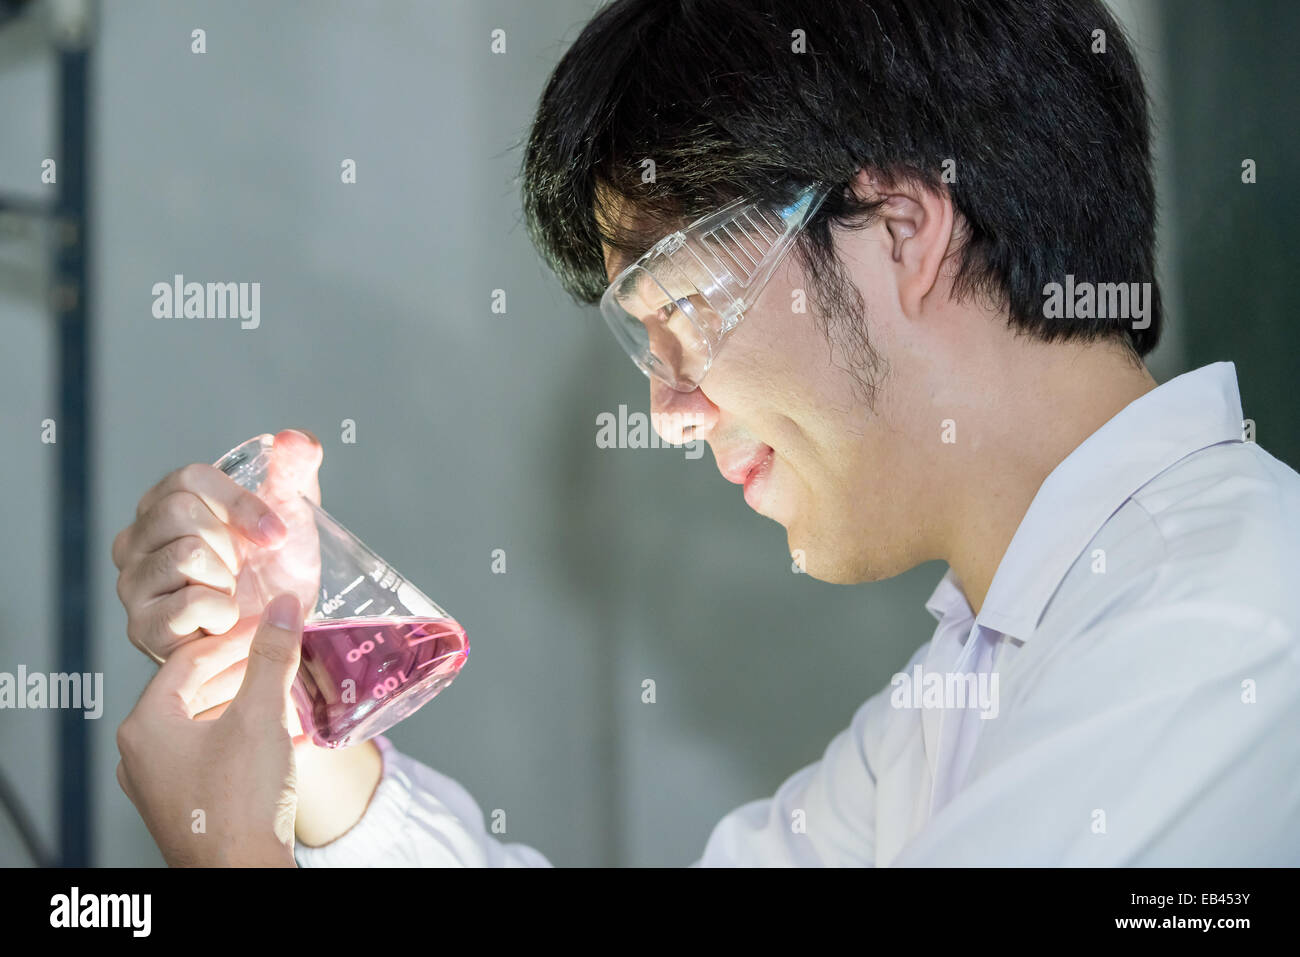 Asian scientist in white uniform looking at a test beaker in laboratory - Stock Image